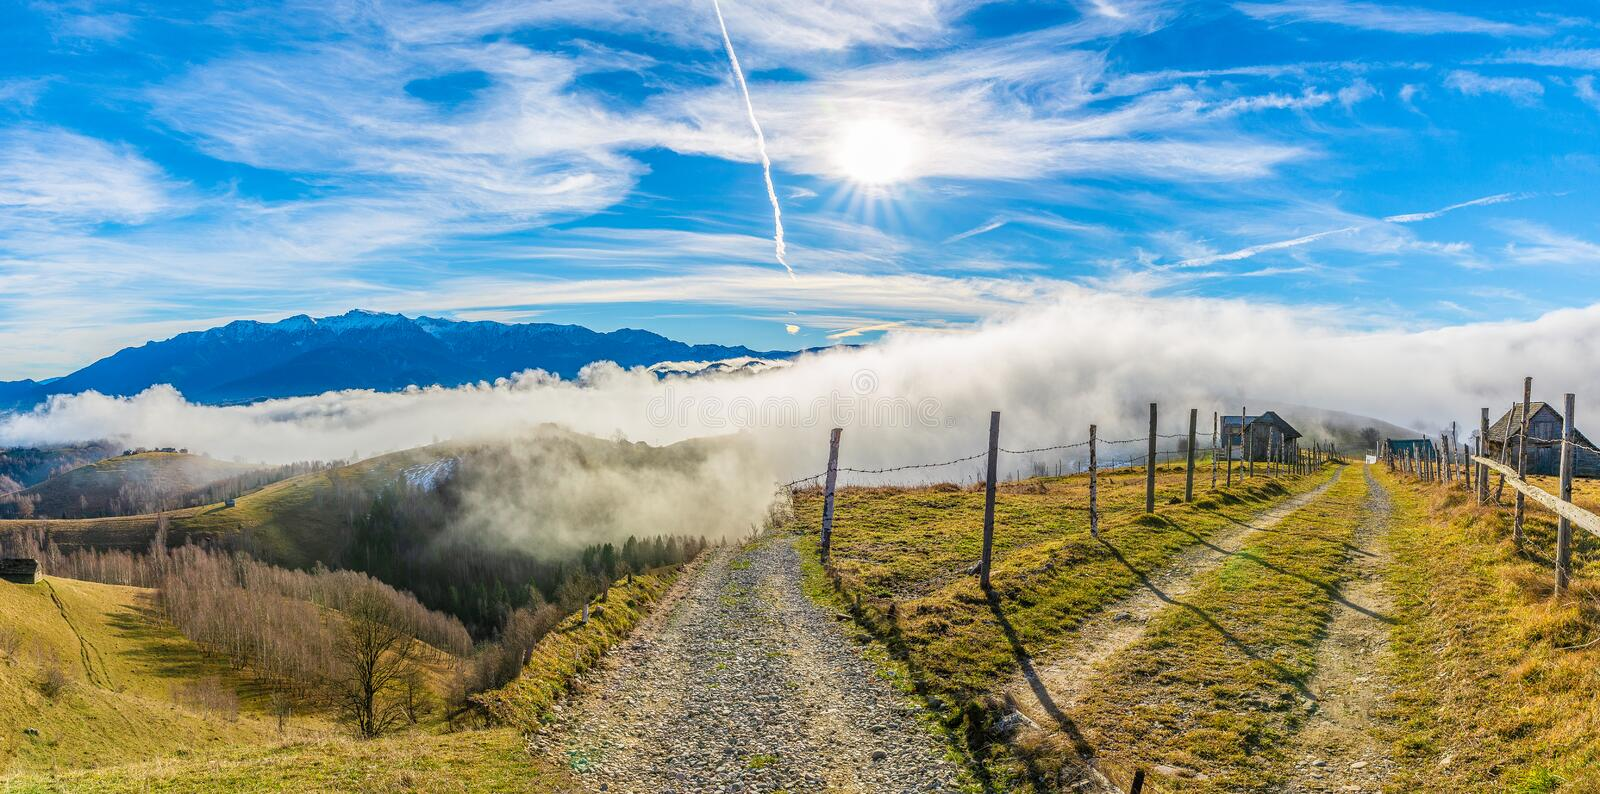 Rural landscape with fog royalty free stock images